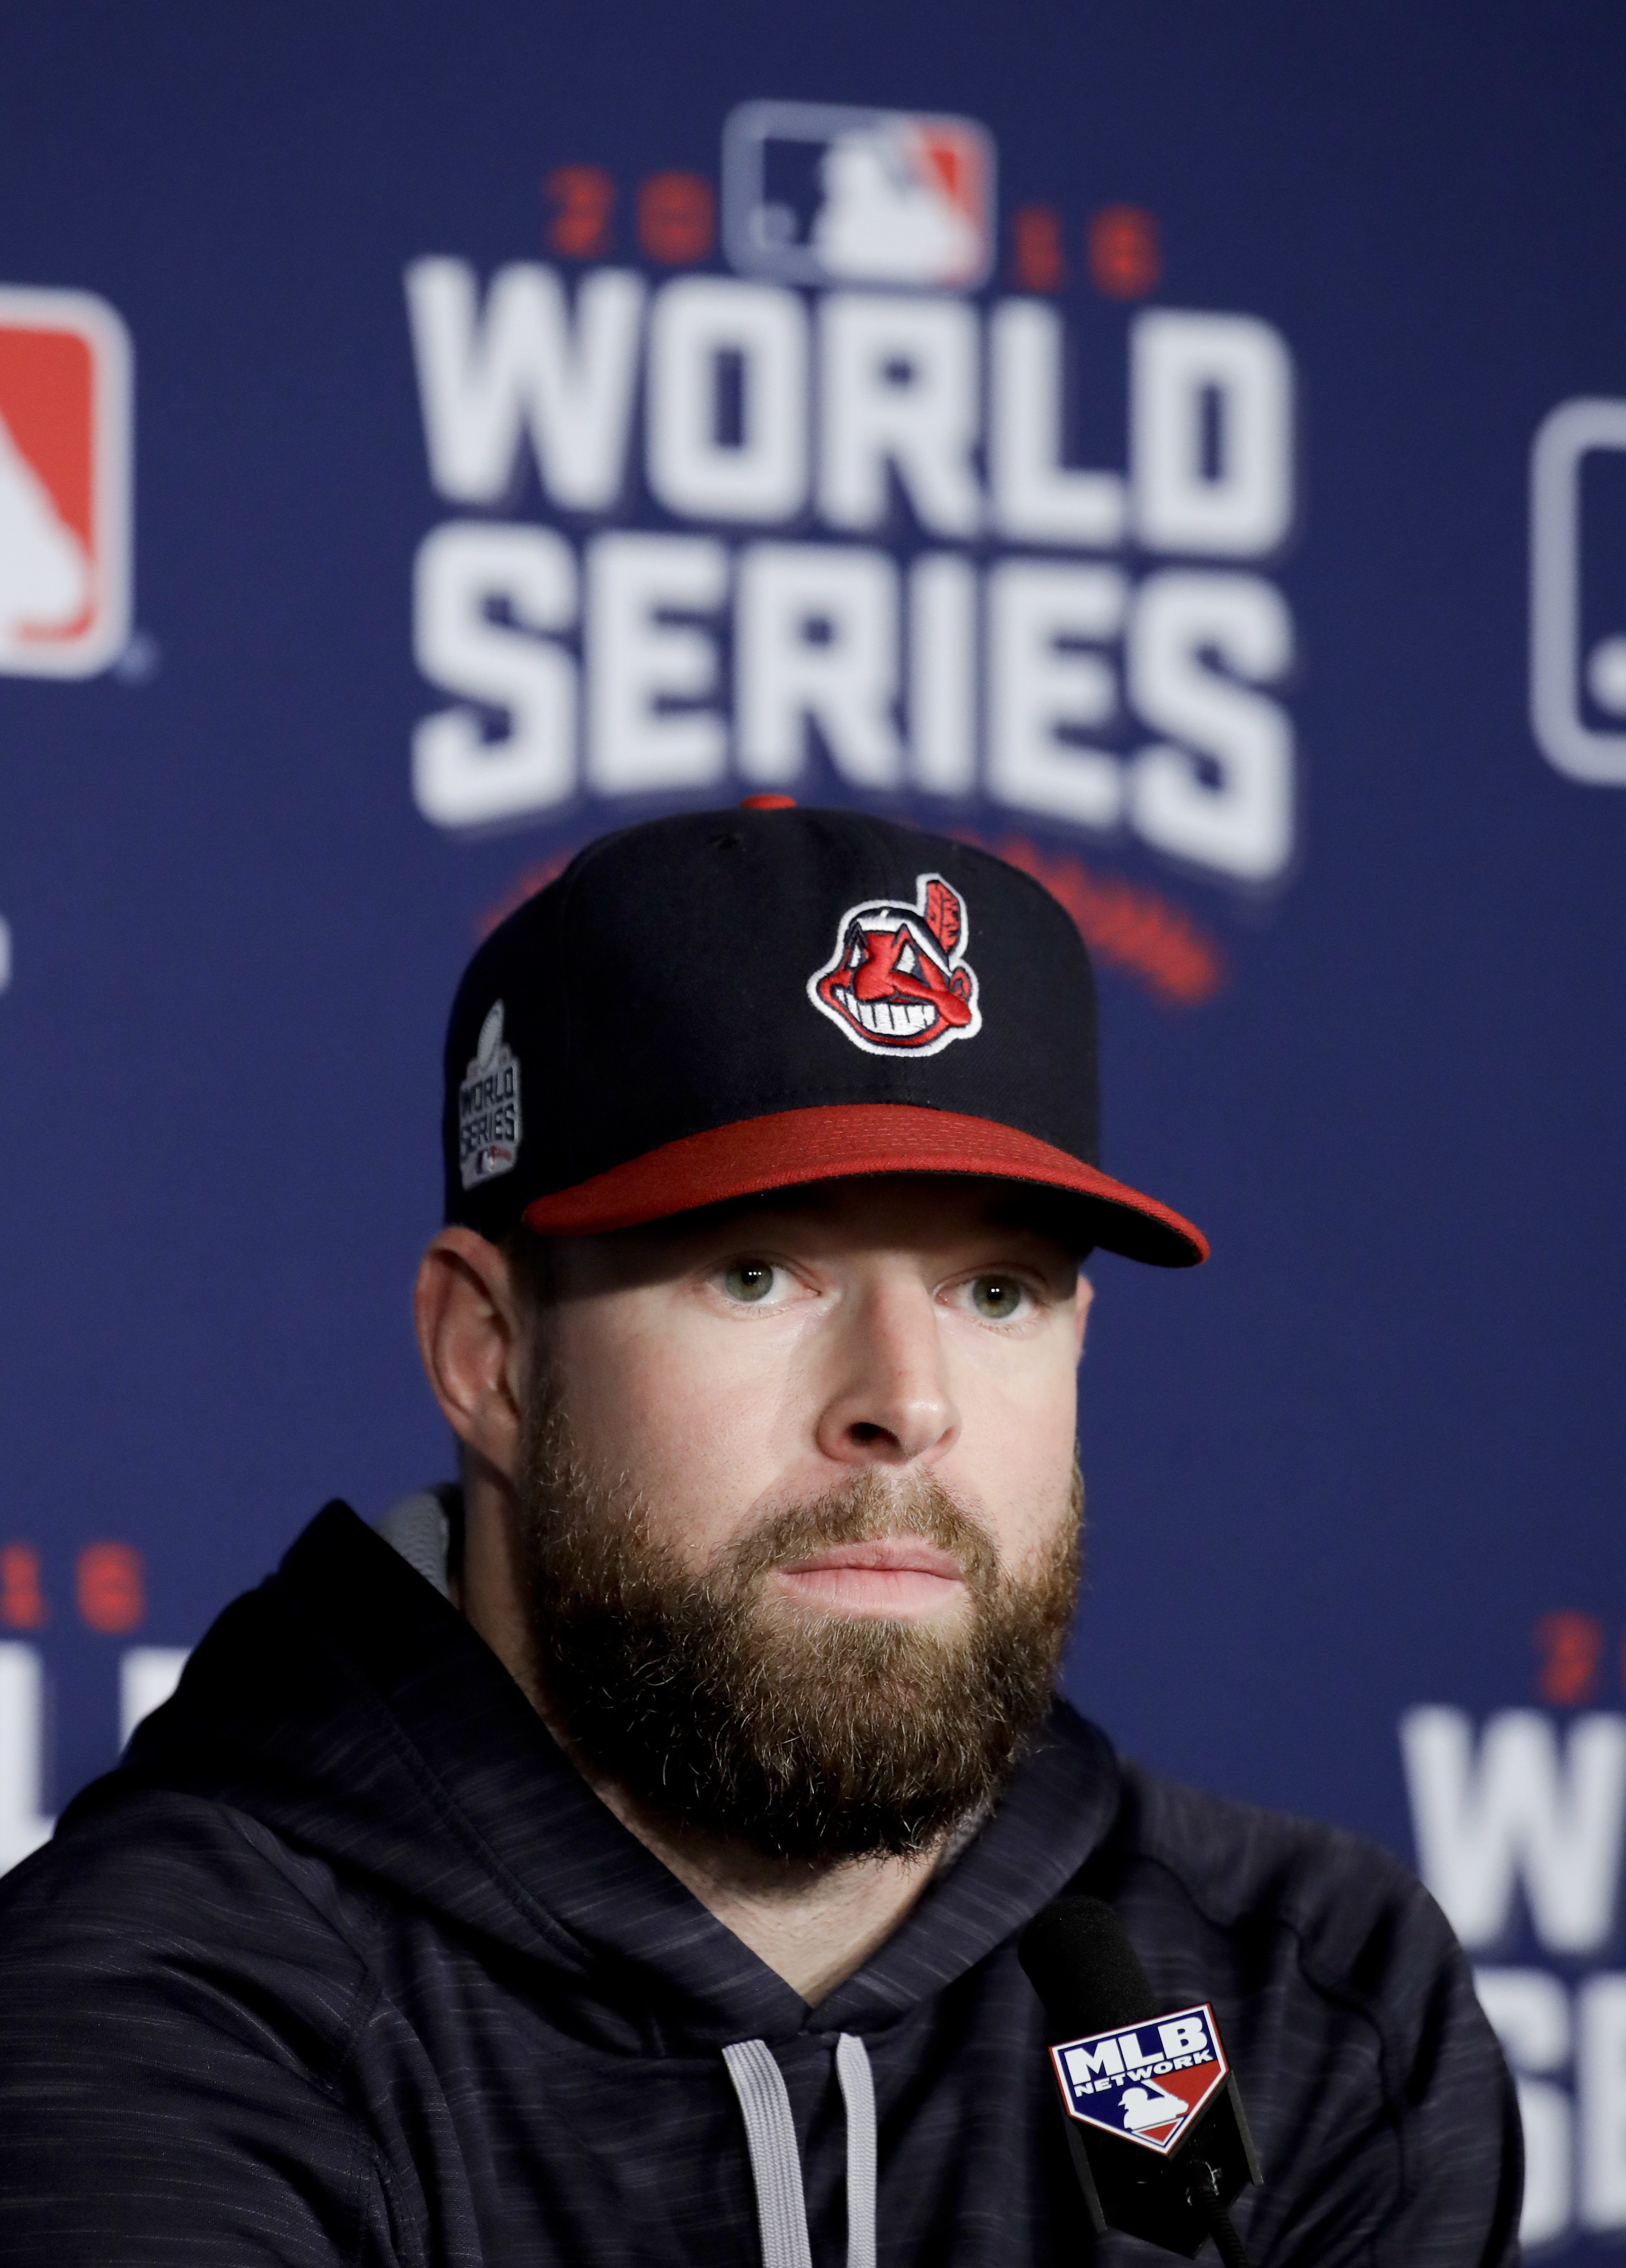 Cleveland Indians starting pitcher Corey Kluber talks during a news conference before Game 6 of the Major League Baseball World Series against the Chicago Cubs Tuesday, Nov. 1, 2016, in Cleveland. (AP Photo/Gene J. Puskar)